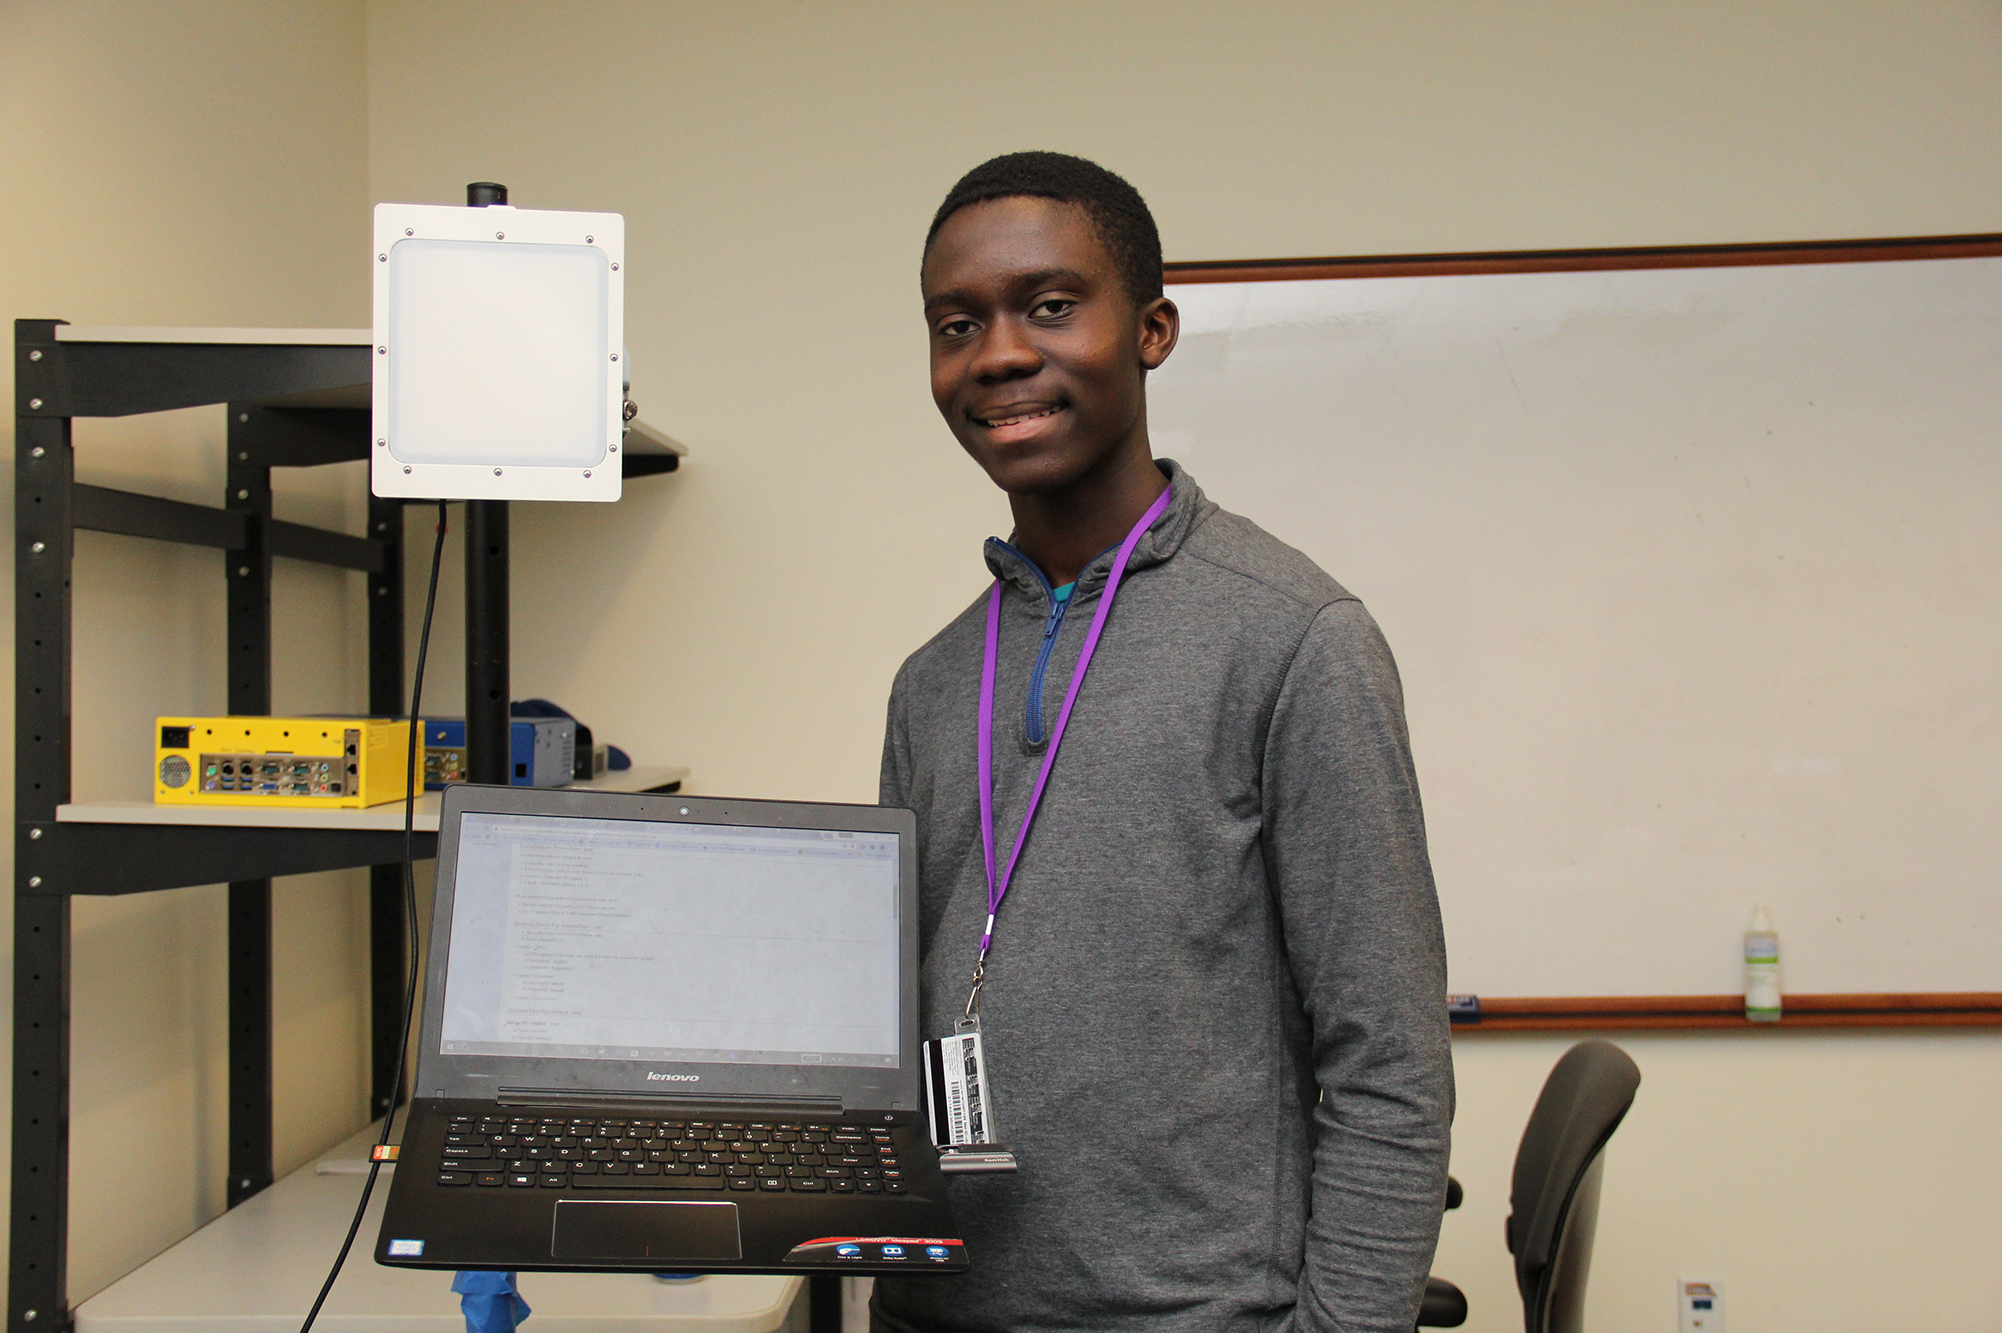 student holding up a laptop